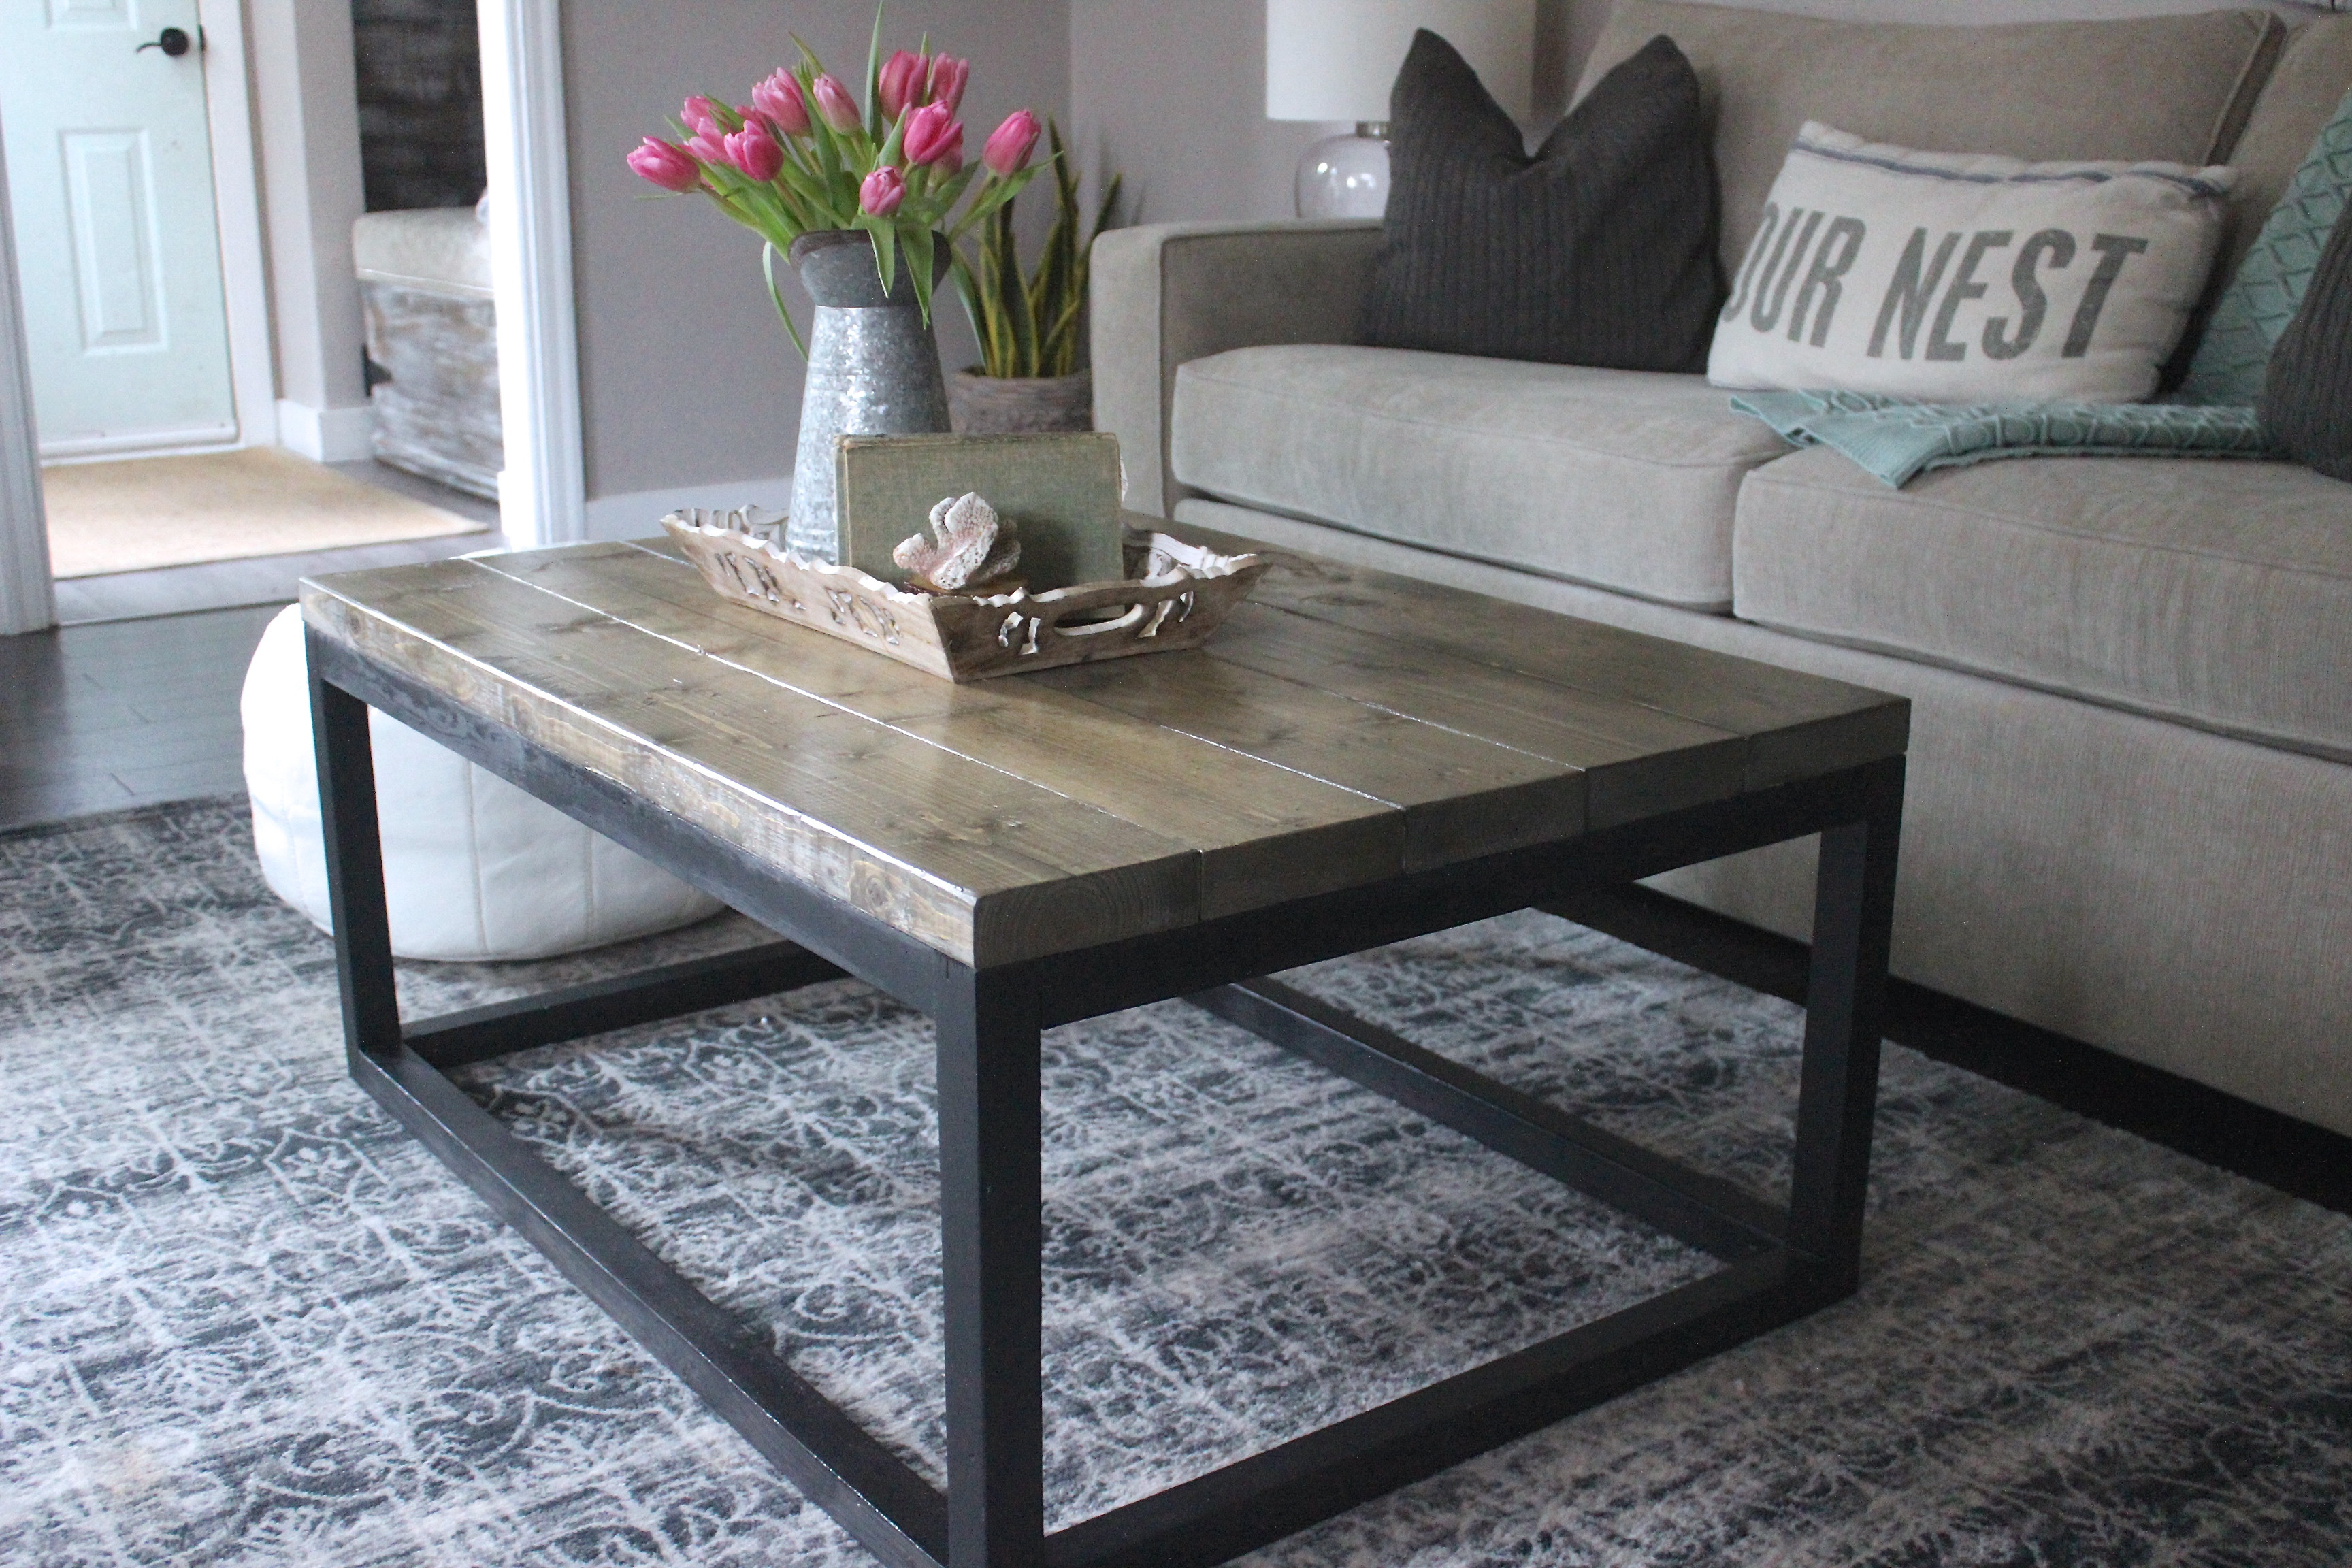 Best ideas about DIY Industrial Table . Save or Pin Ana White Now.